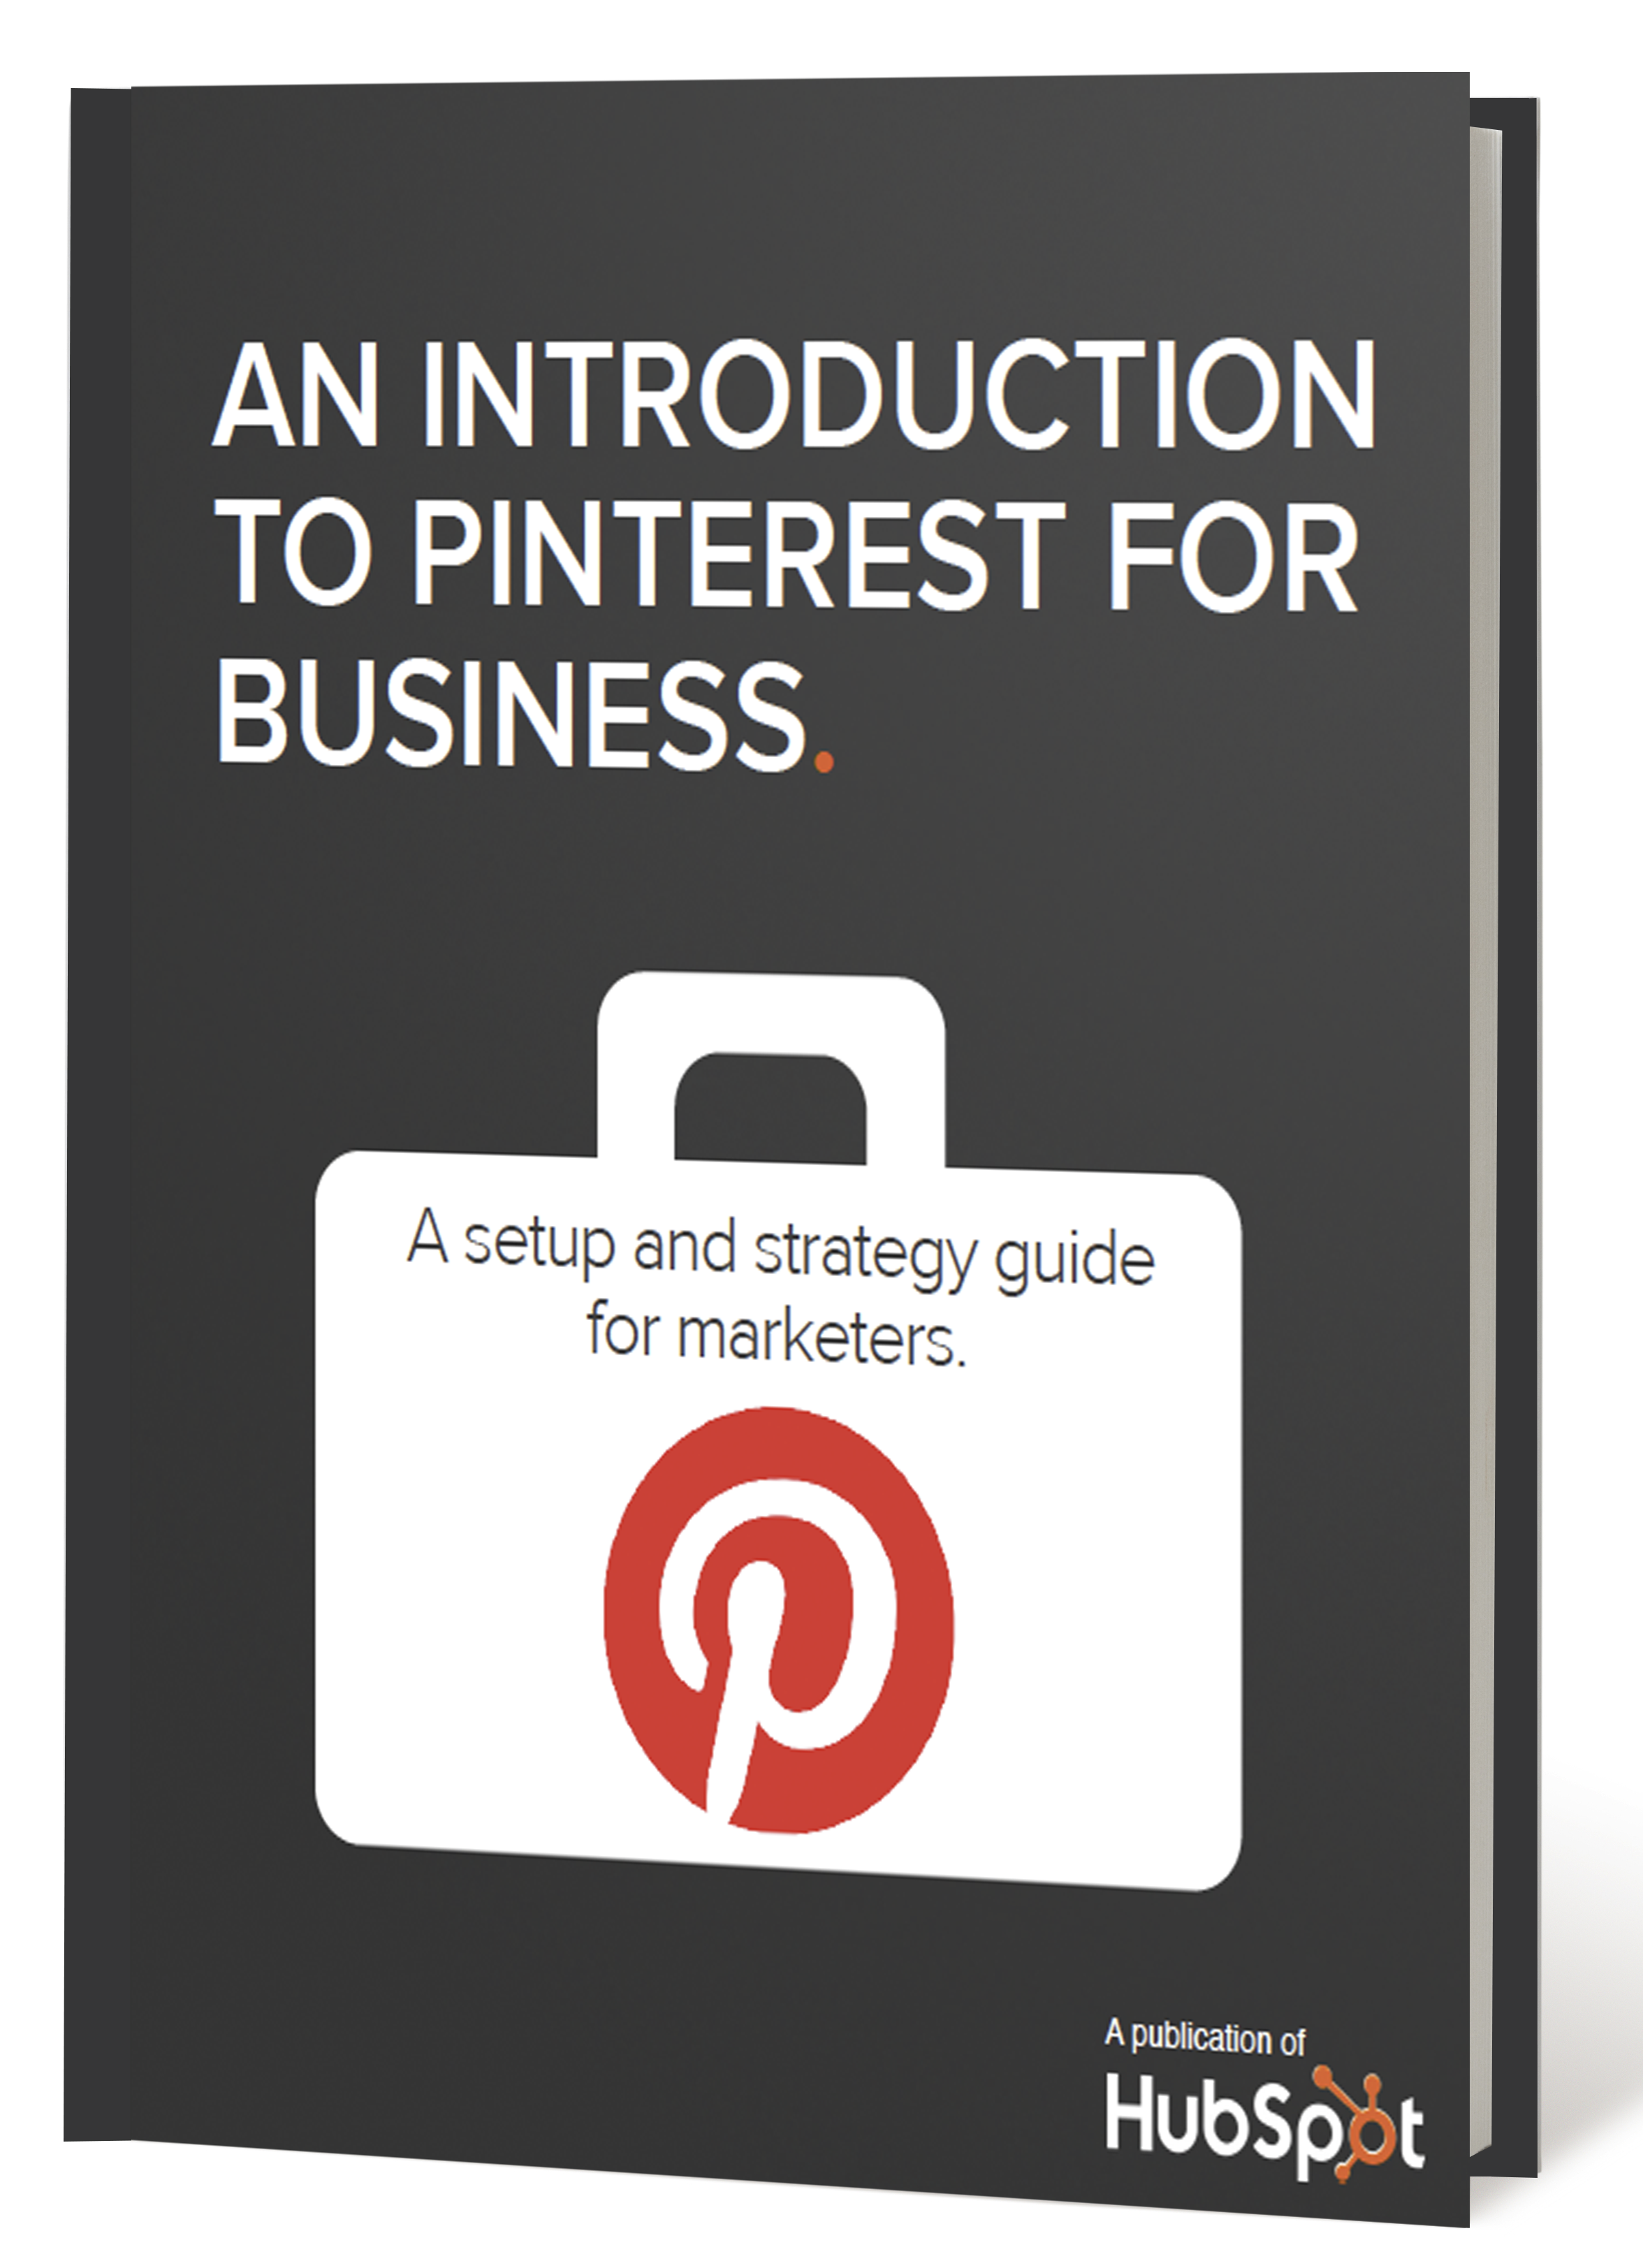 An Introduction to Pinterest for Business